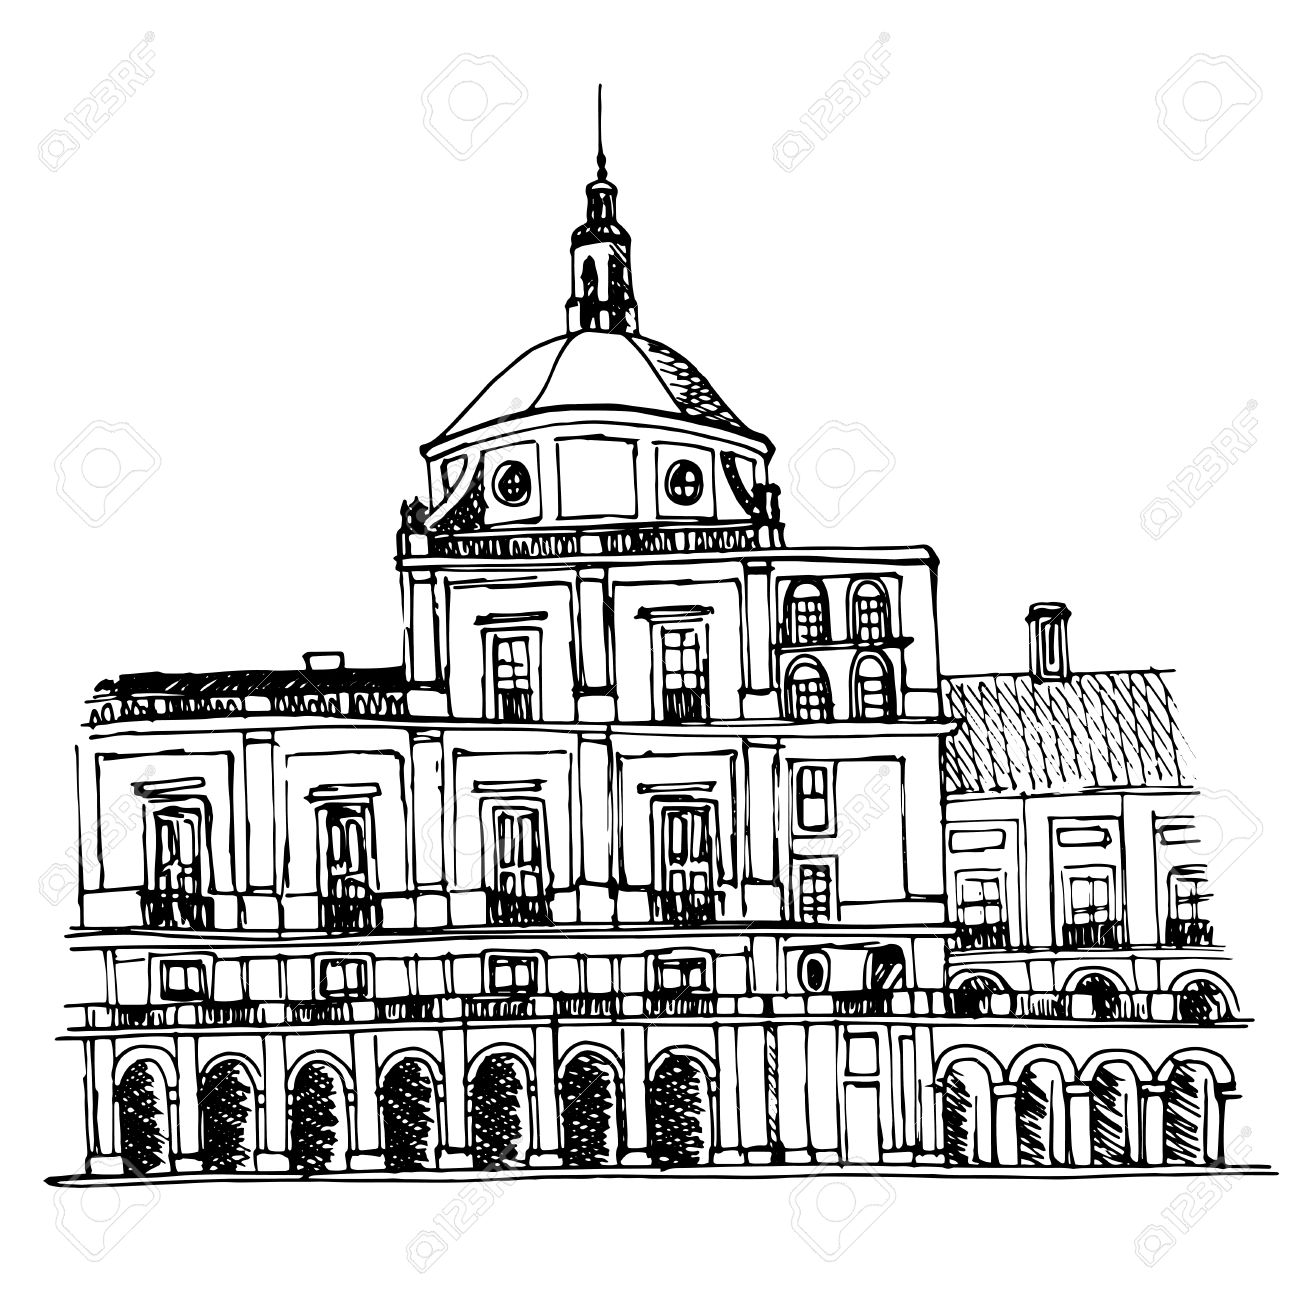 Madrid clipart graphic royalty free download 3,032 Madrid Stock Illustrations, Cliparts And Royalty Free Madrid ... graphic royalty free download